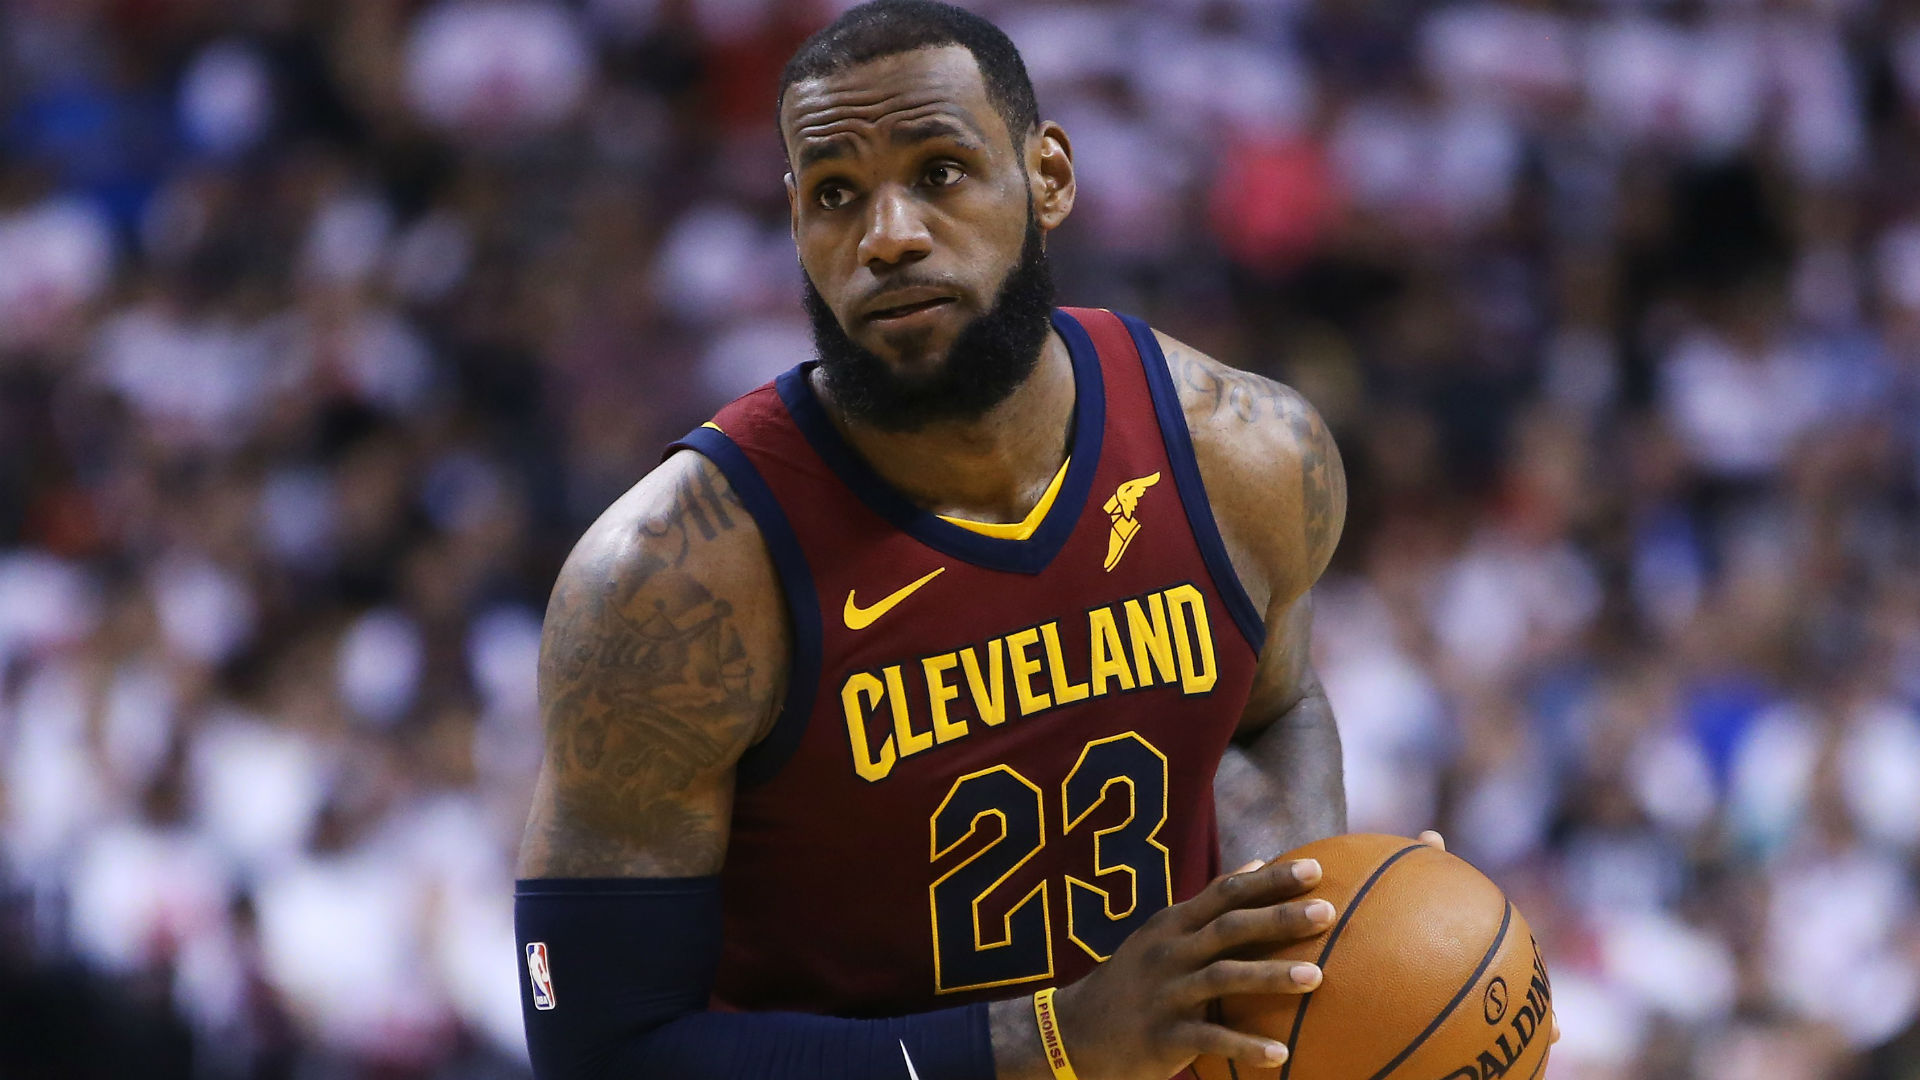 NBA free agency: TUMS to provide heartburn medicine for Cavaliers fans if LeBron James signs elsewhere